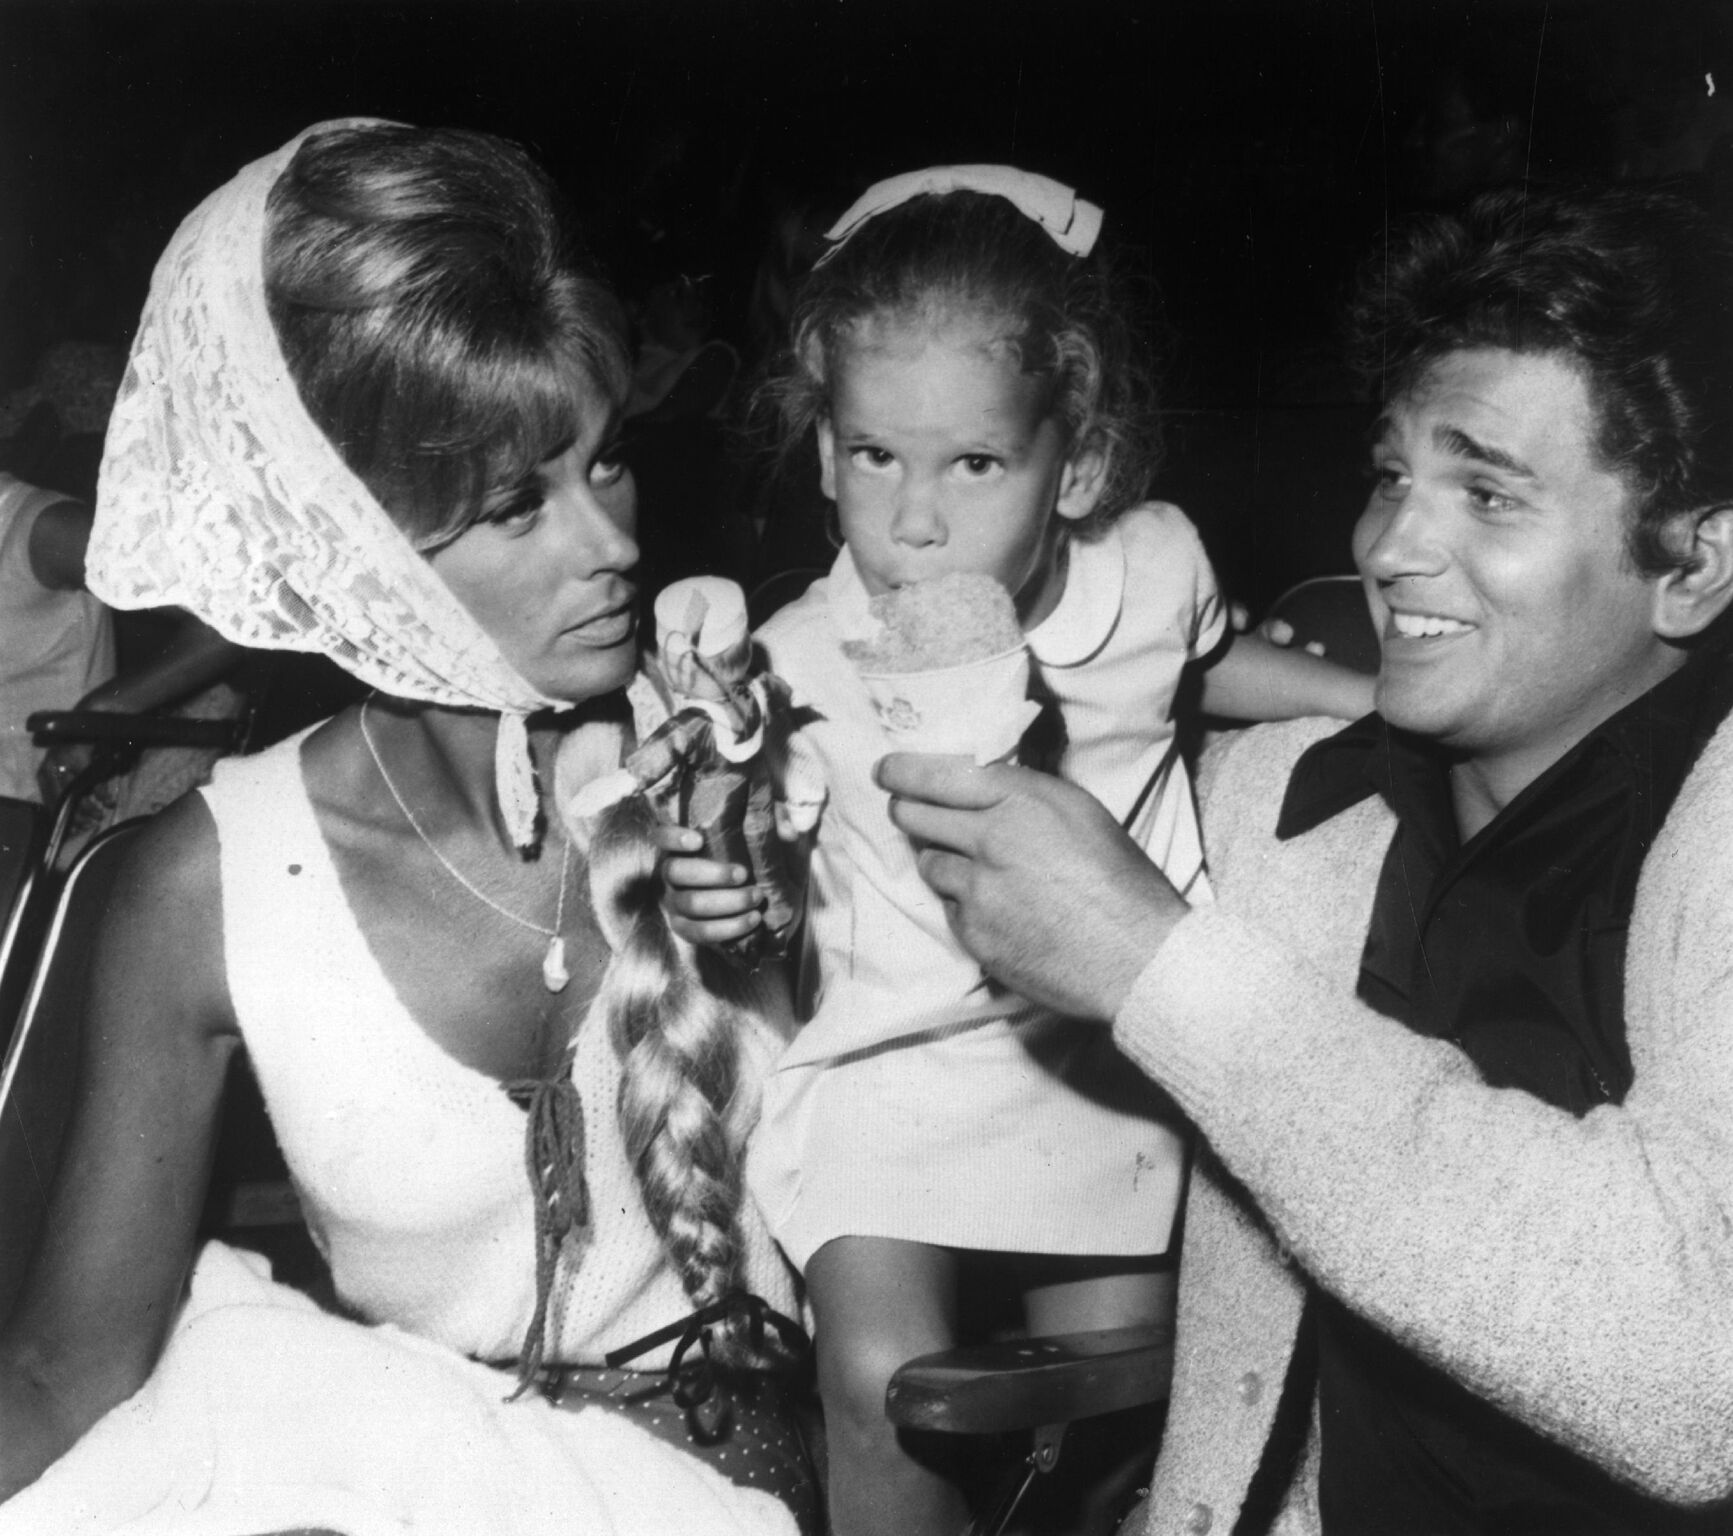 Michael Landon with his wife Lynn and their young daughter | Getty Images / Global Images Ukraine